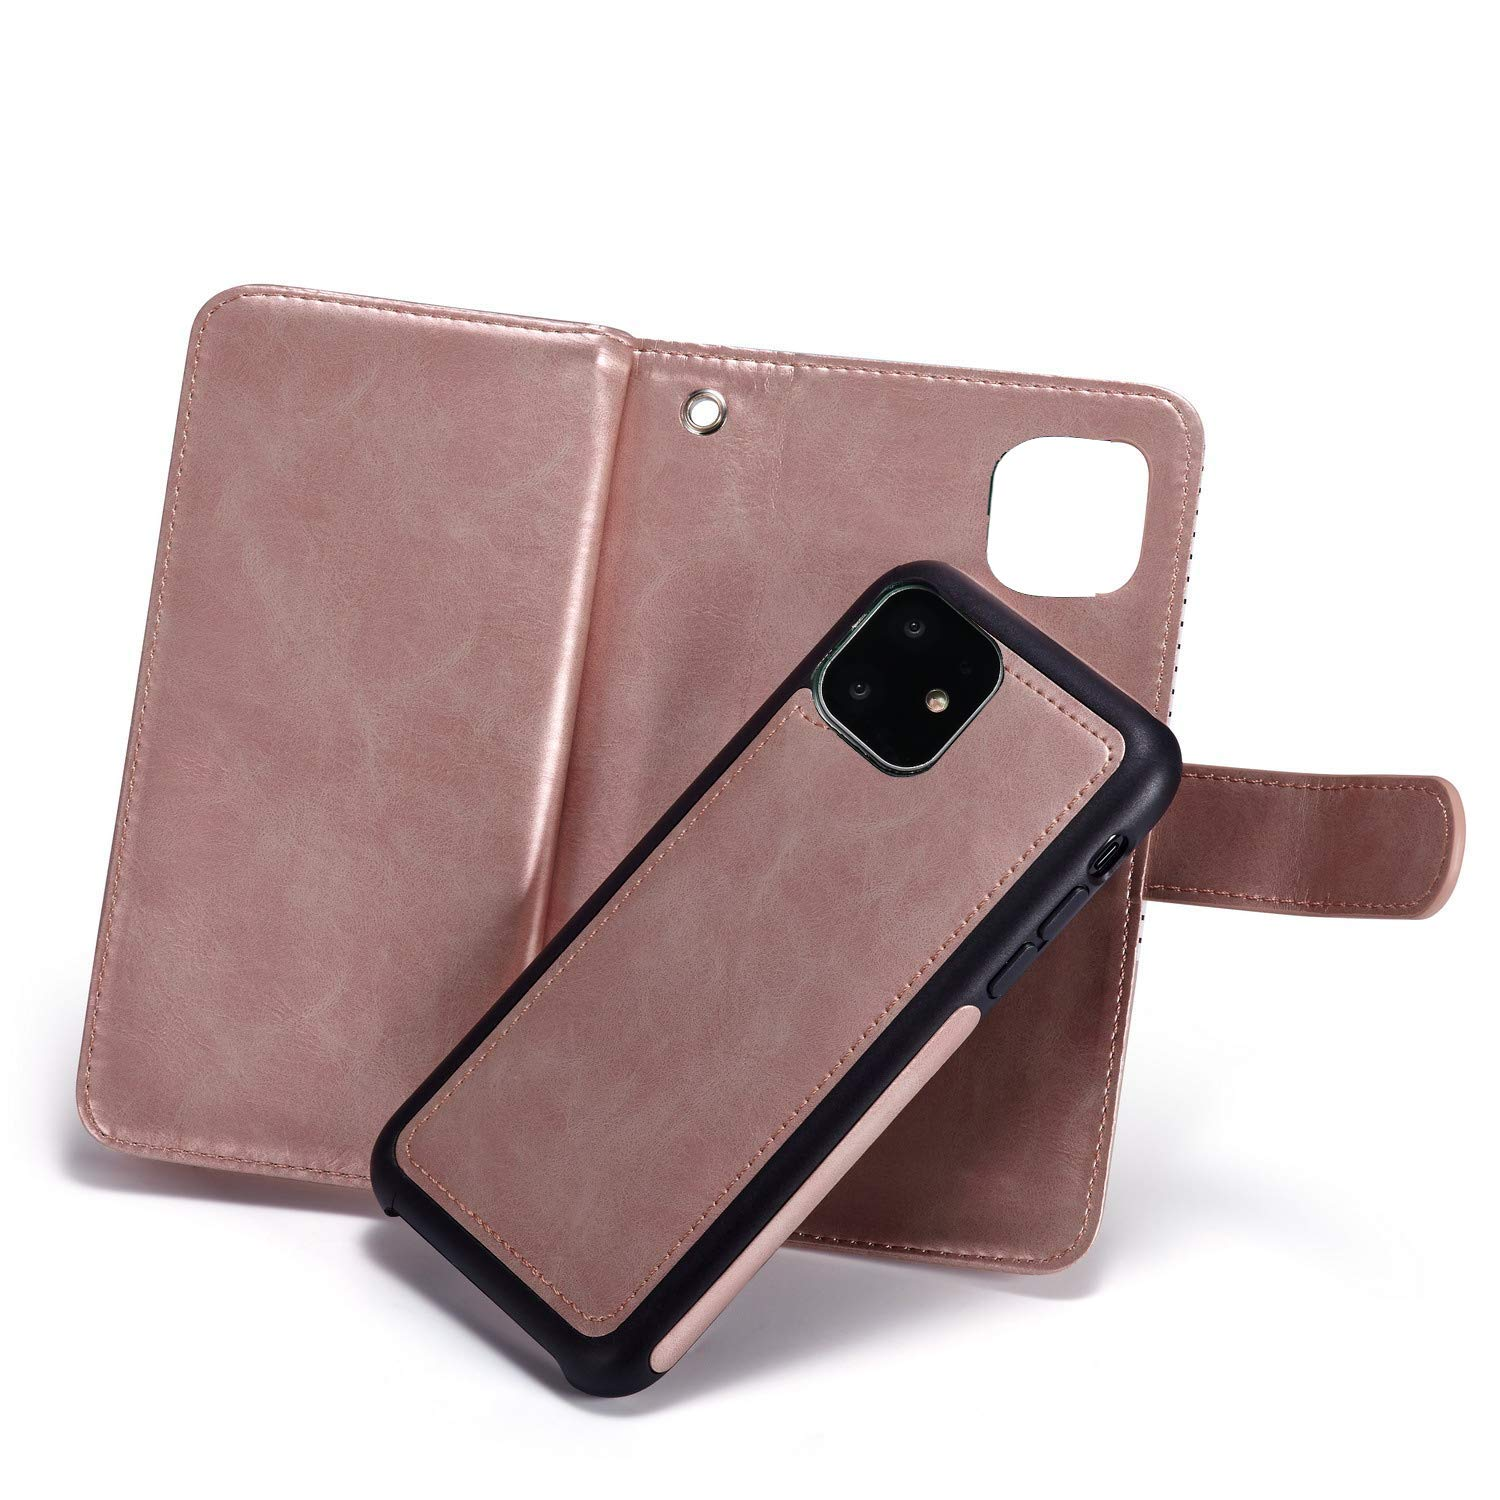 Black iPhone 11 Wallet Case,Detachable 2 in 1 case Fit Car Phone Mount Magnet Closure Premium Leather Zipper Purse FLYEE 8 Card Slots Flip Cover with Wrist Strap for Apple iPhone 11 6.1inch